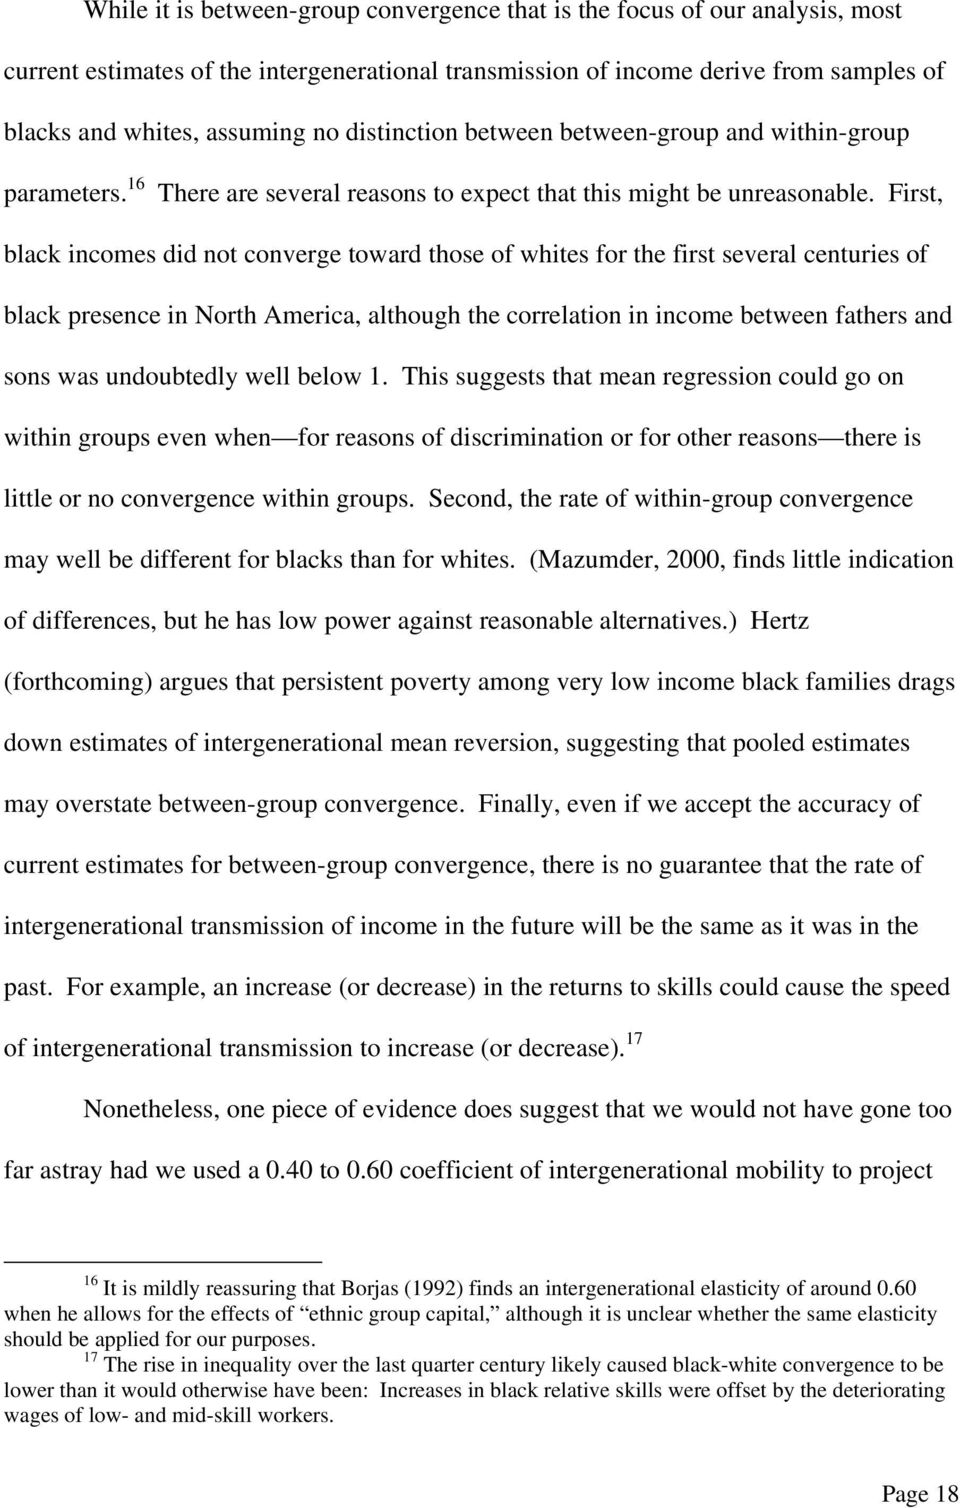 First, black incomes did not converge toward those of whites for the first several centuries of black presence in North America, although the correlation in income between fathers and sons was